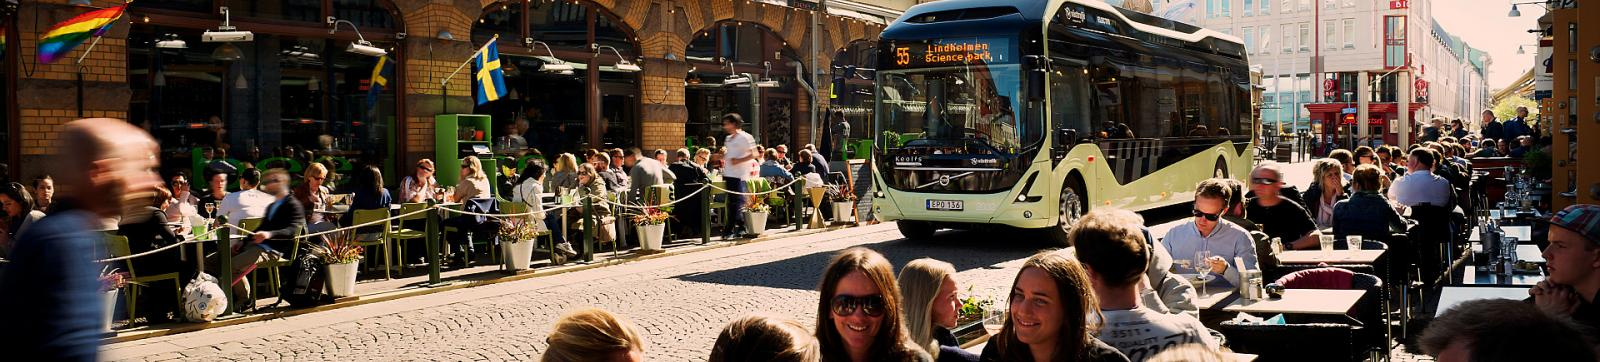 Electric bus passes through a bustling street in Gothenburg